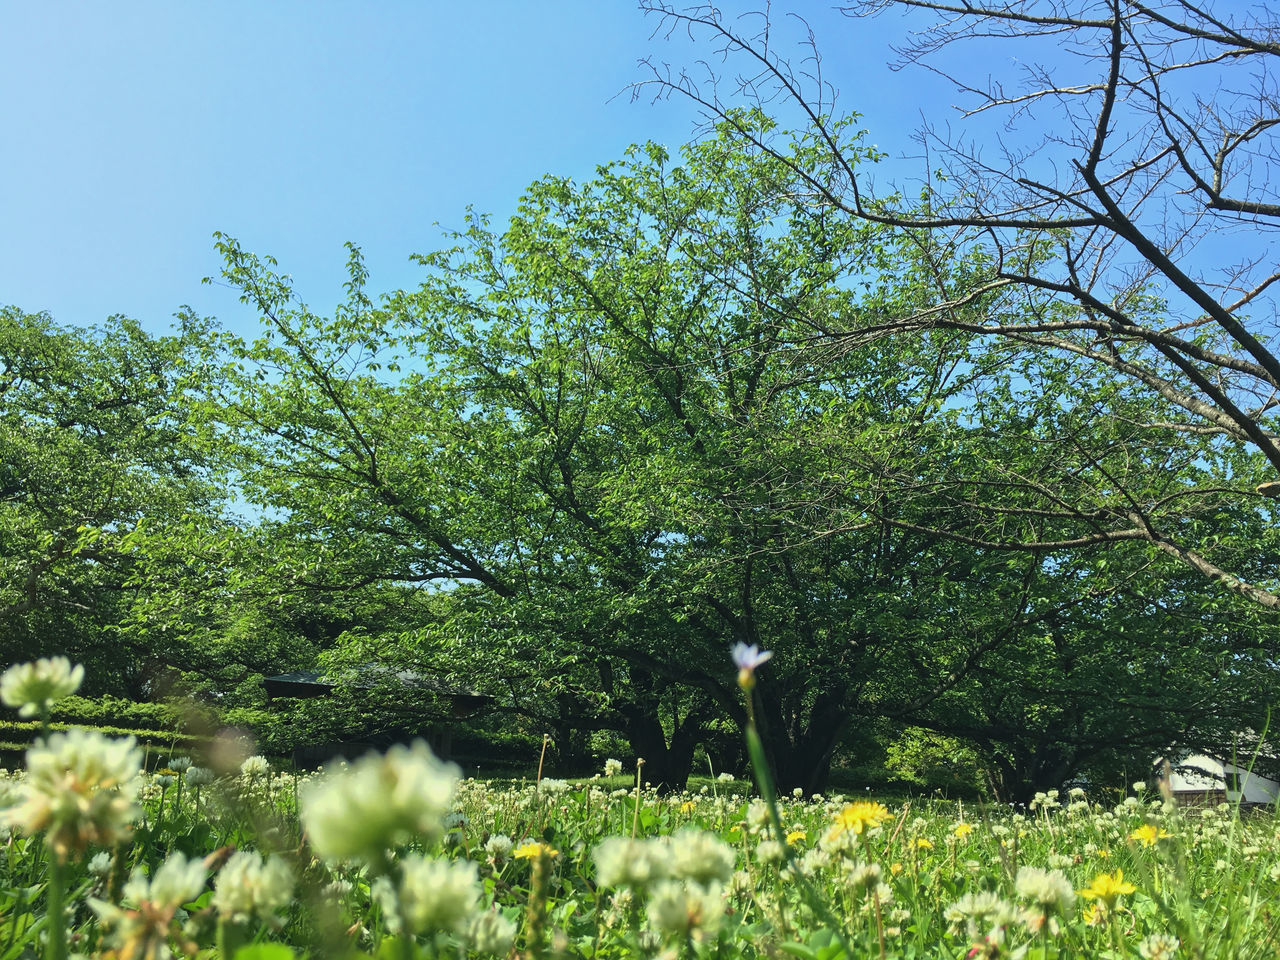 growth, nature, flower, tree, beauty in nature, tranquility, day, plant, outdoors, freshness, fragility, no people